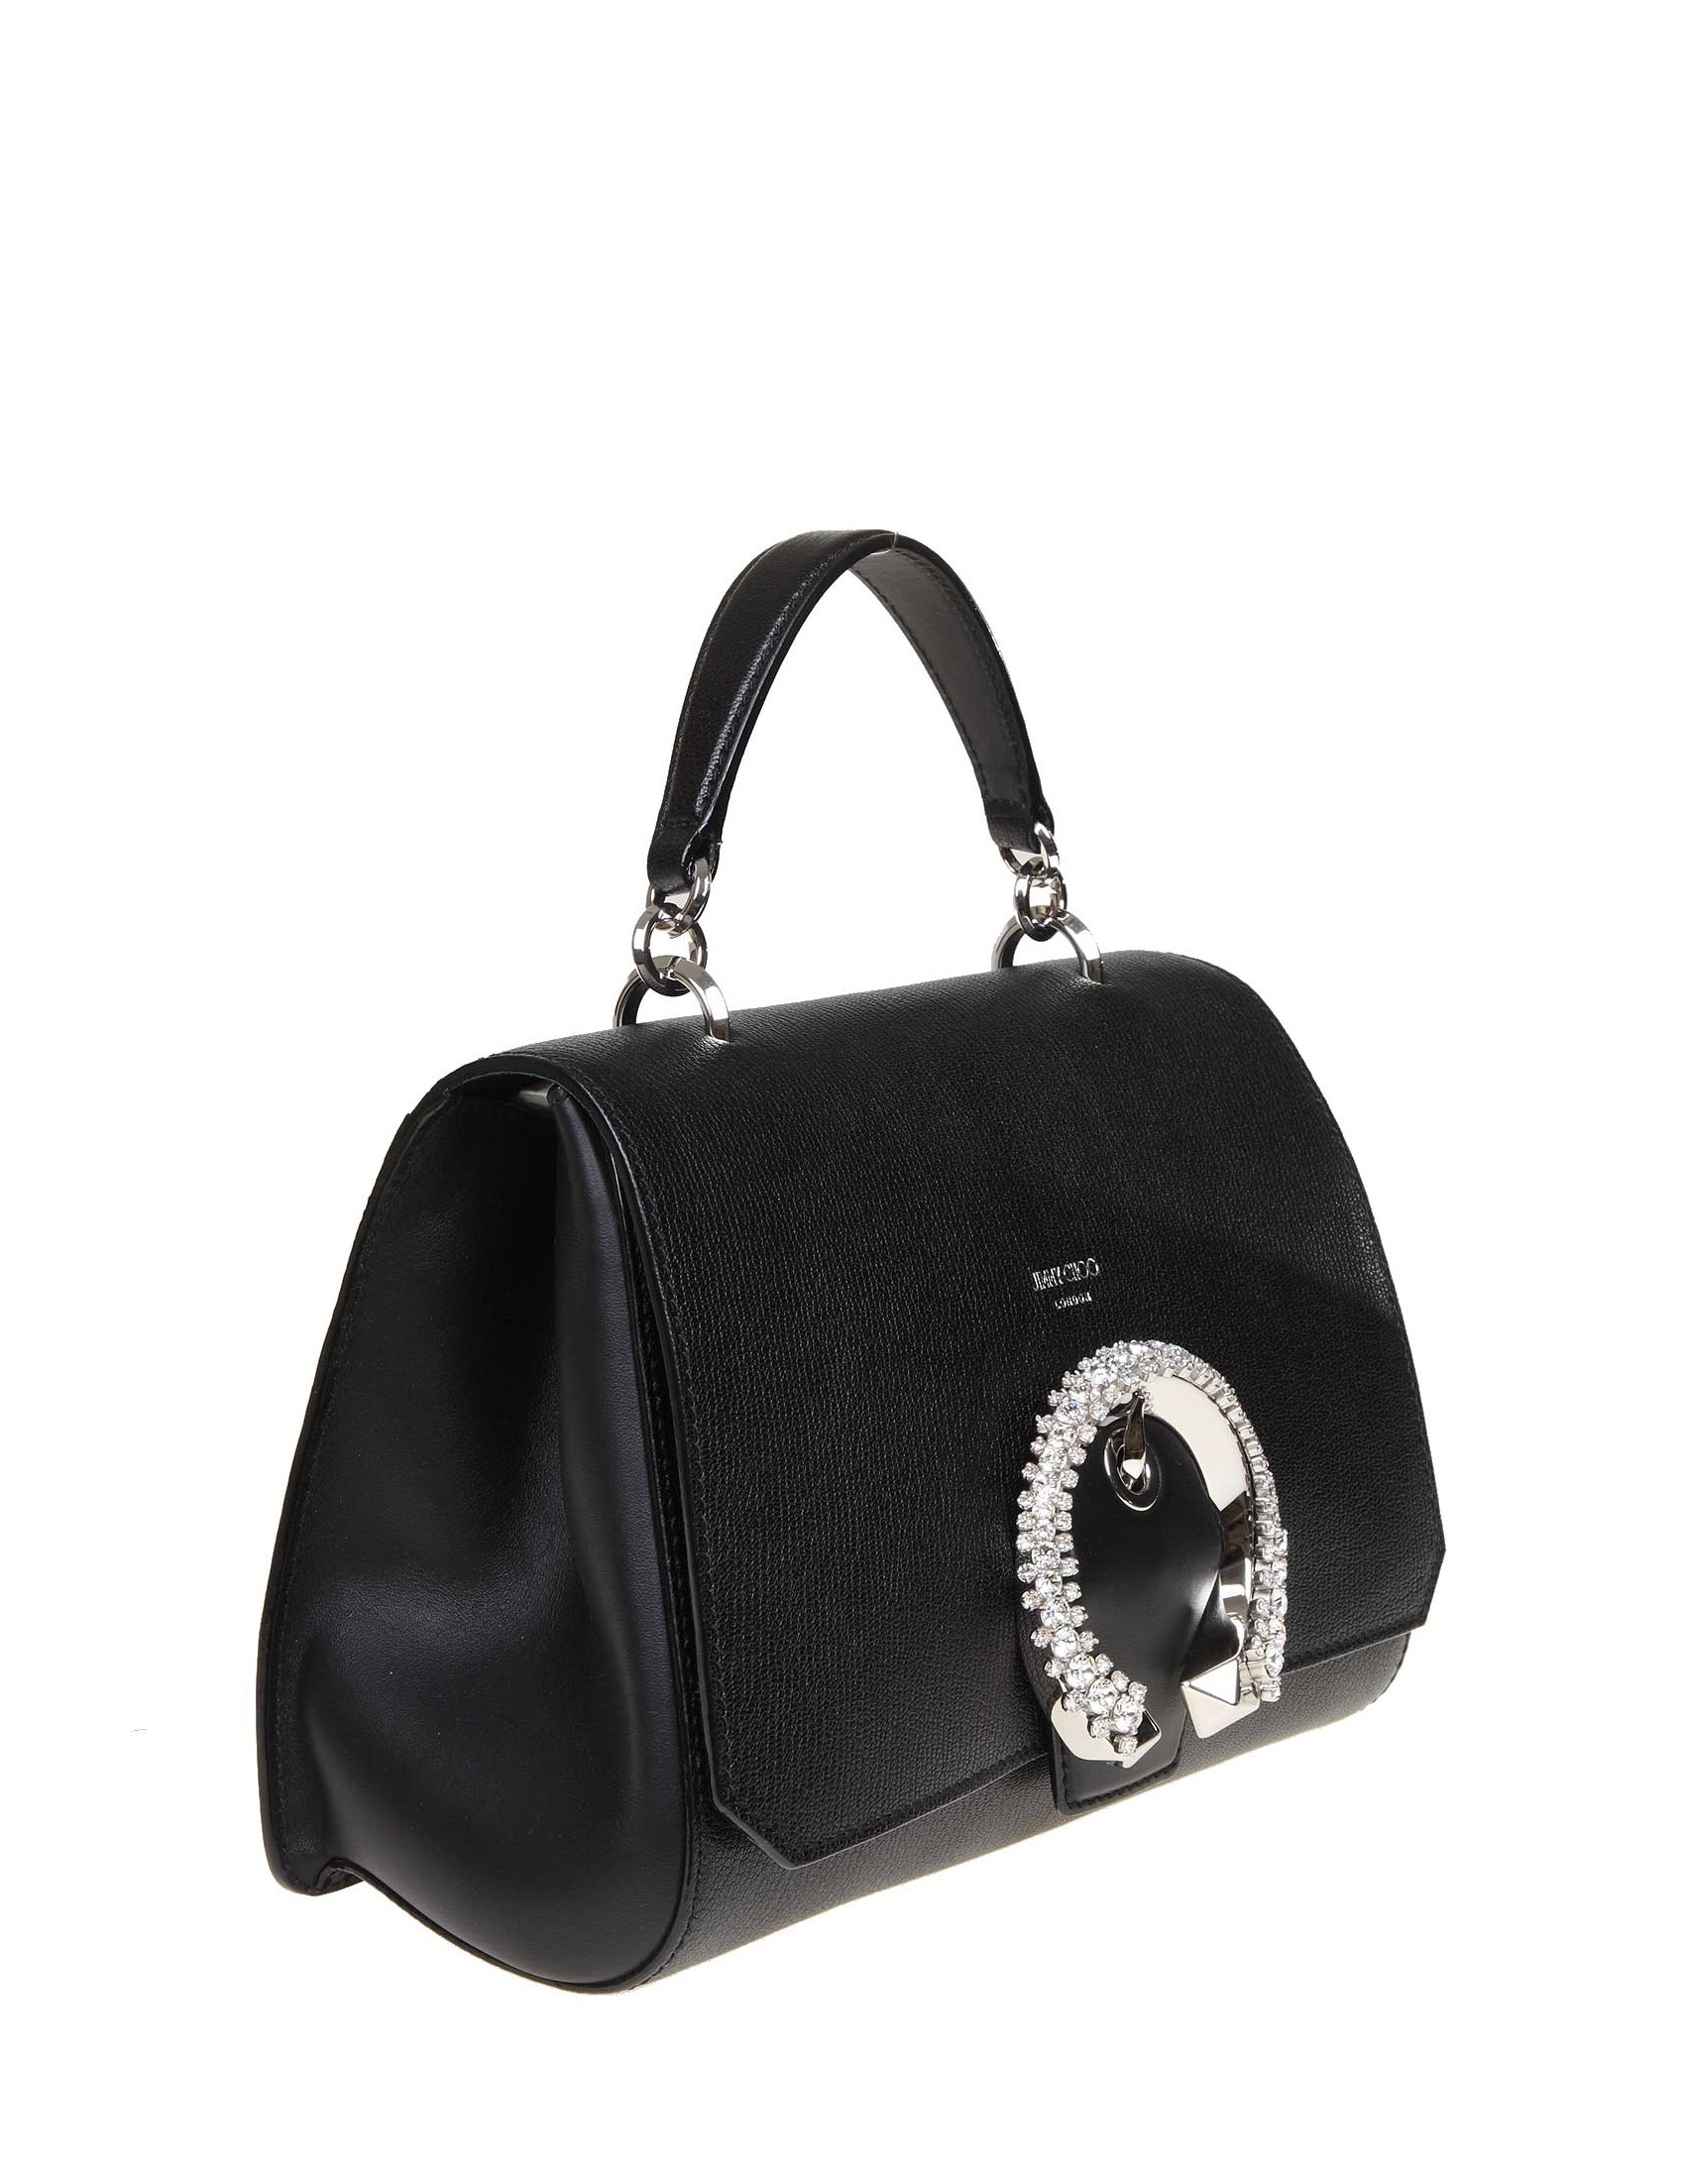 c9525f1d56b ... JIMMY CHOO MADELINE HANDLE HANDLE LEATHER BAG IN BLACK COLORED LEATHER.  prev